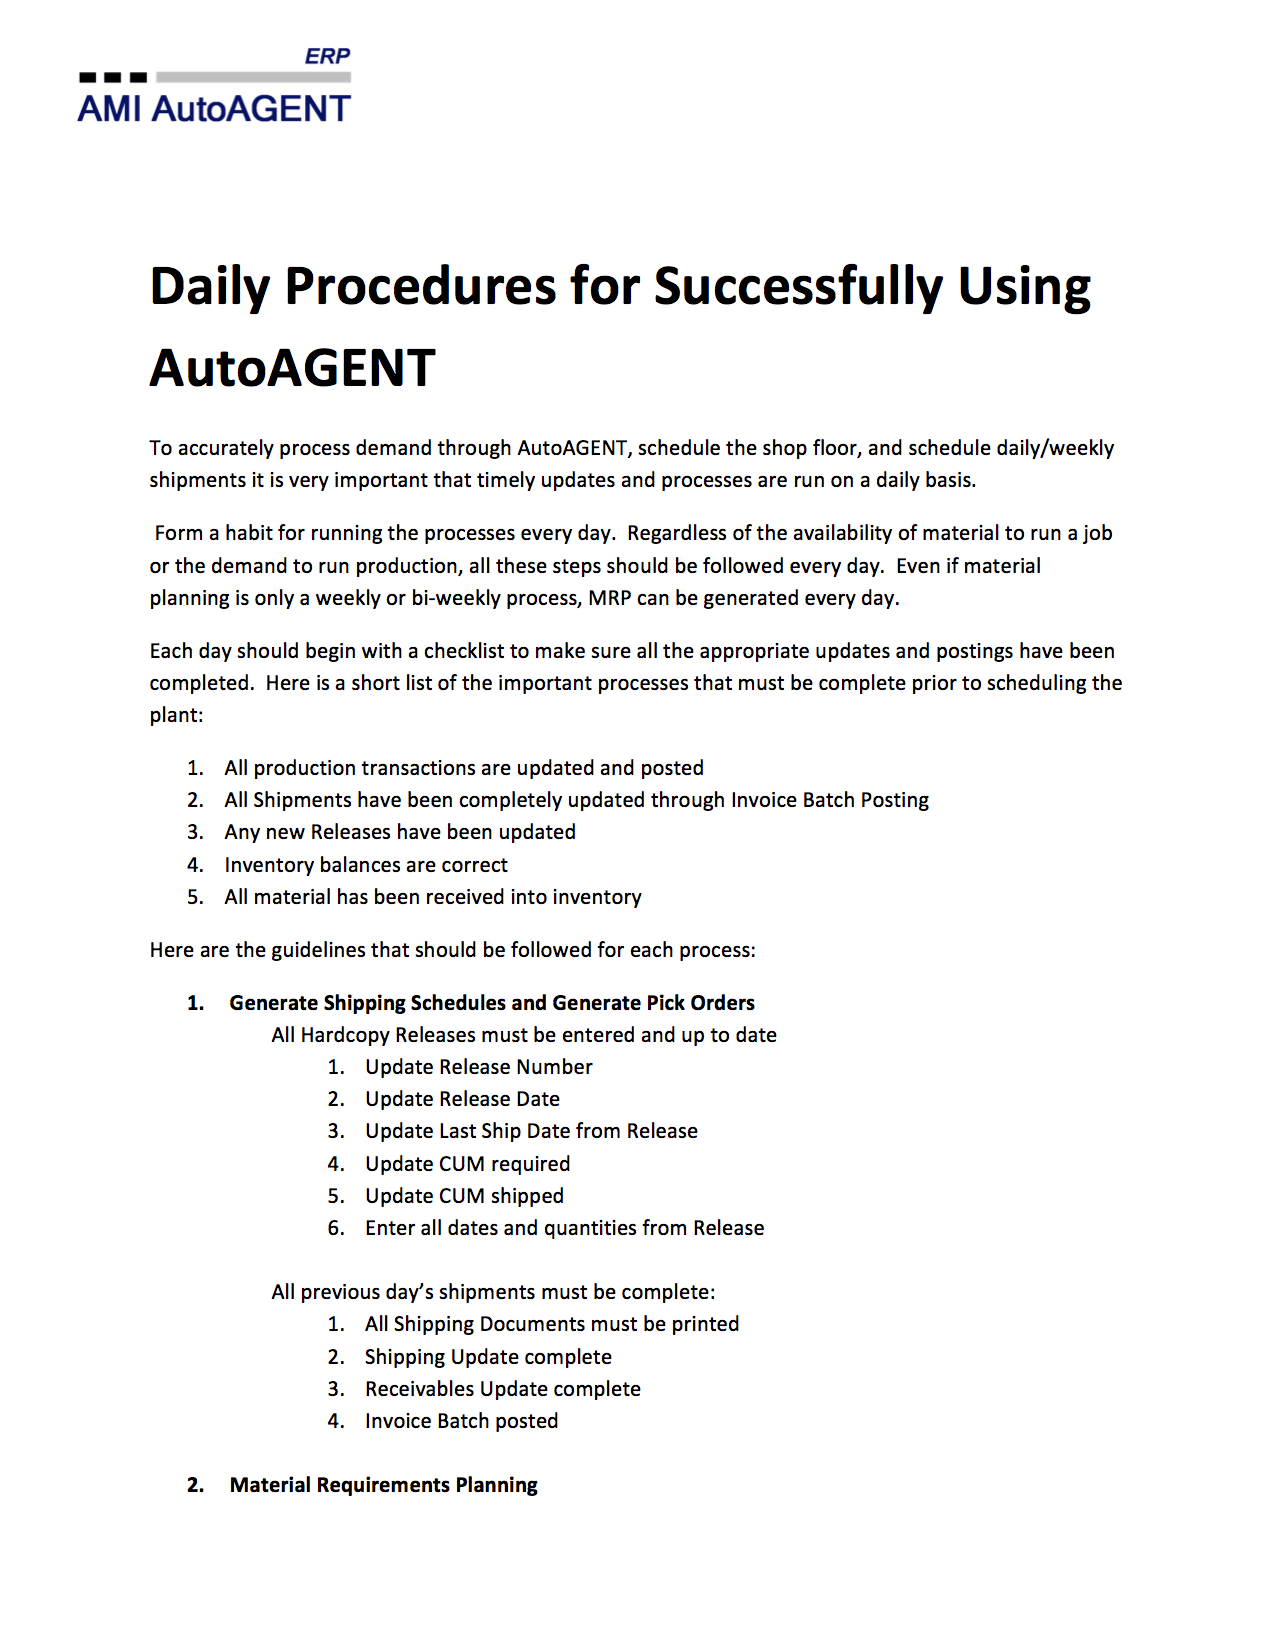 Daily Procedures For Success